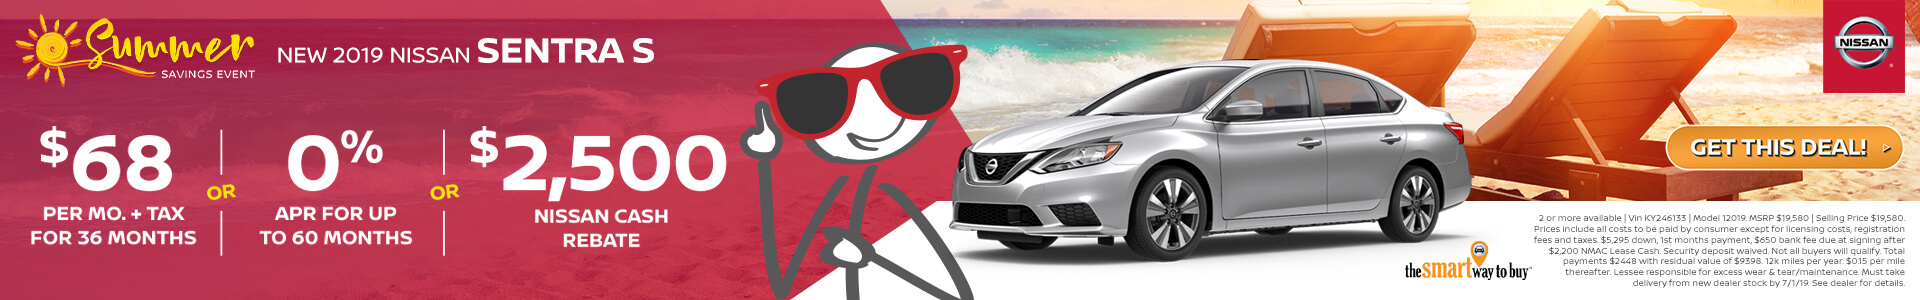 2019 Nissan Sentra Lease for $68